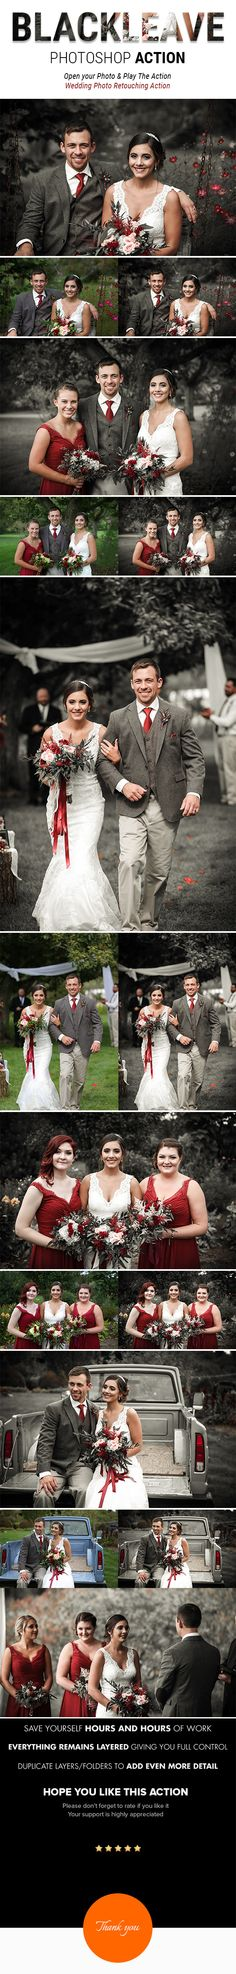 BLACK LEAVE | Special Effects Photoshop Action for Wedding Photographer